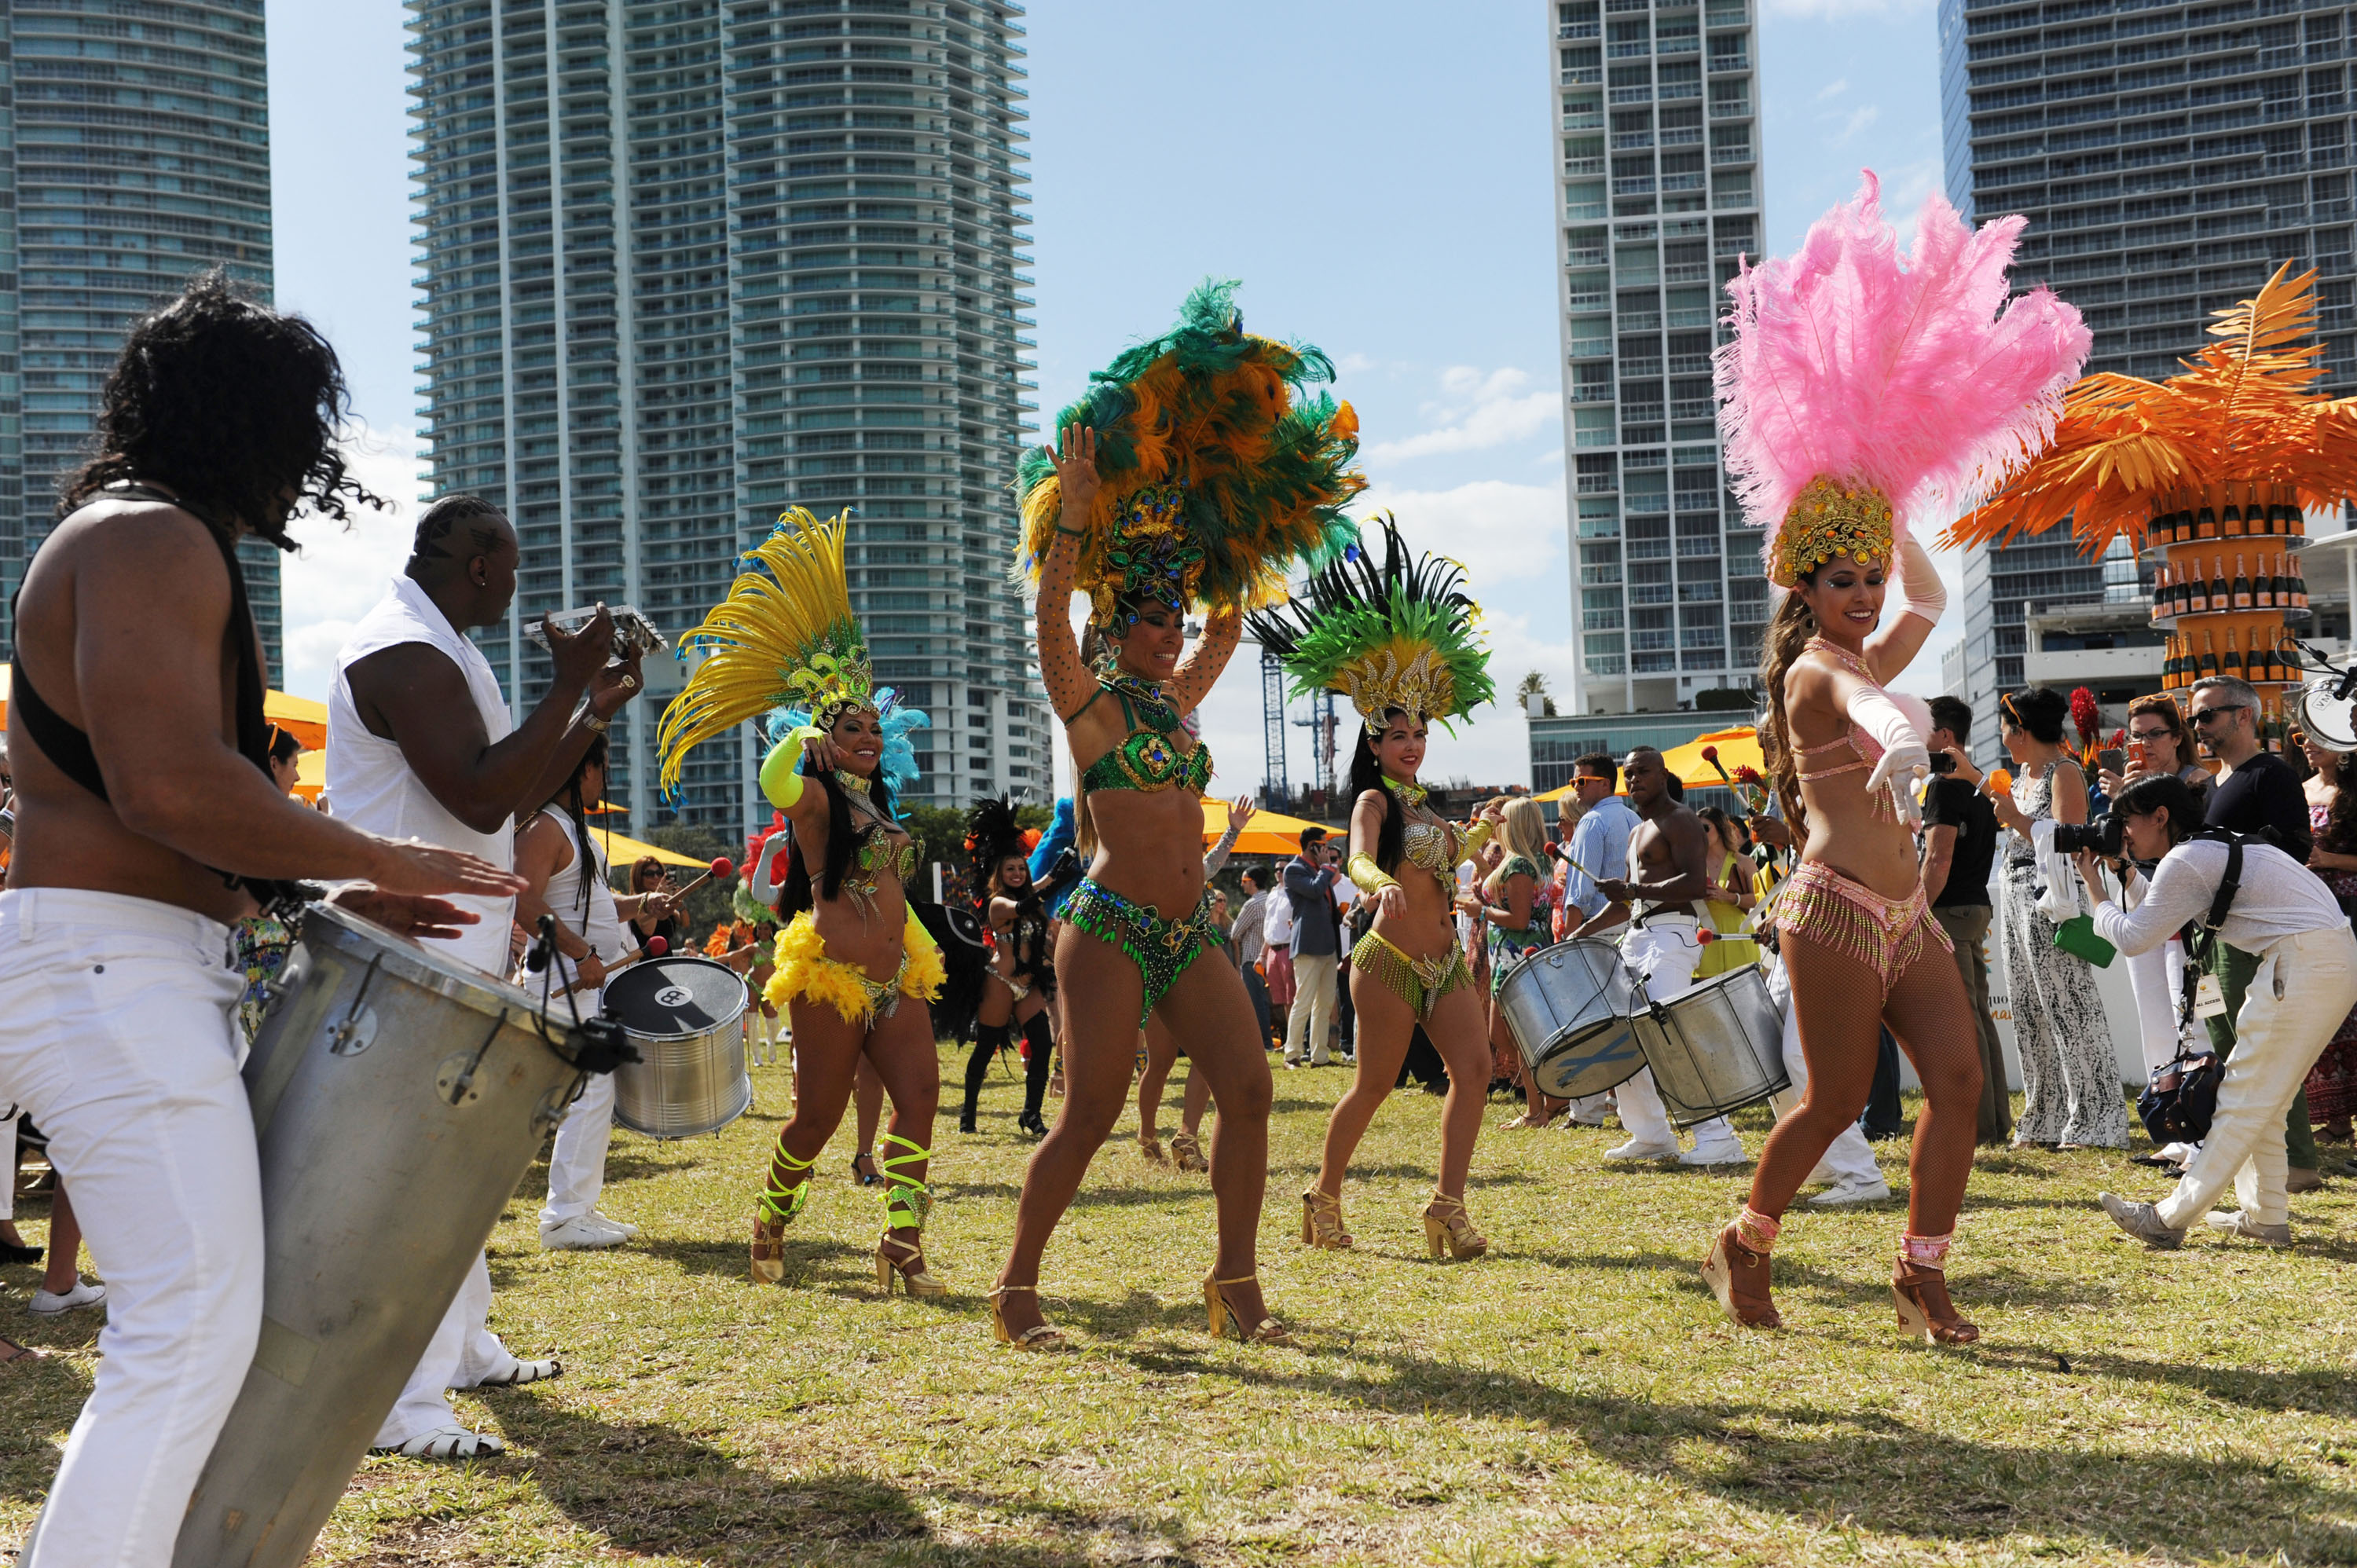 40+ Street Style Photos From the Veuve Clicquot Carnaval